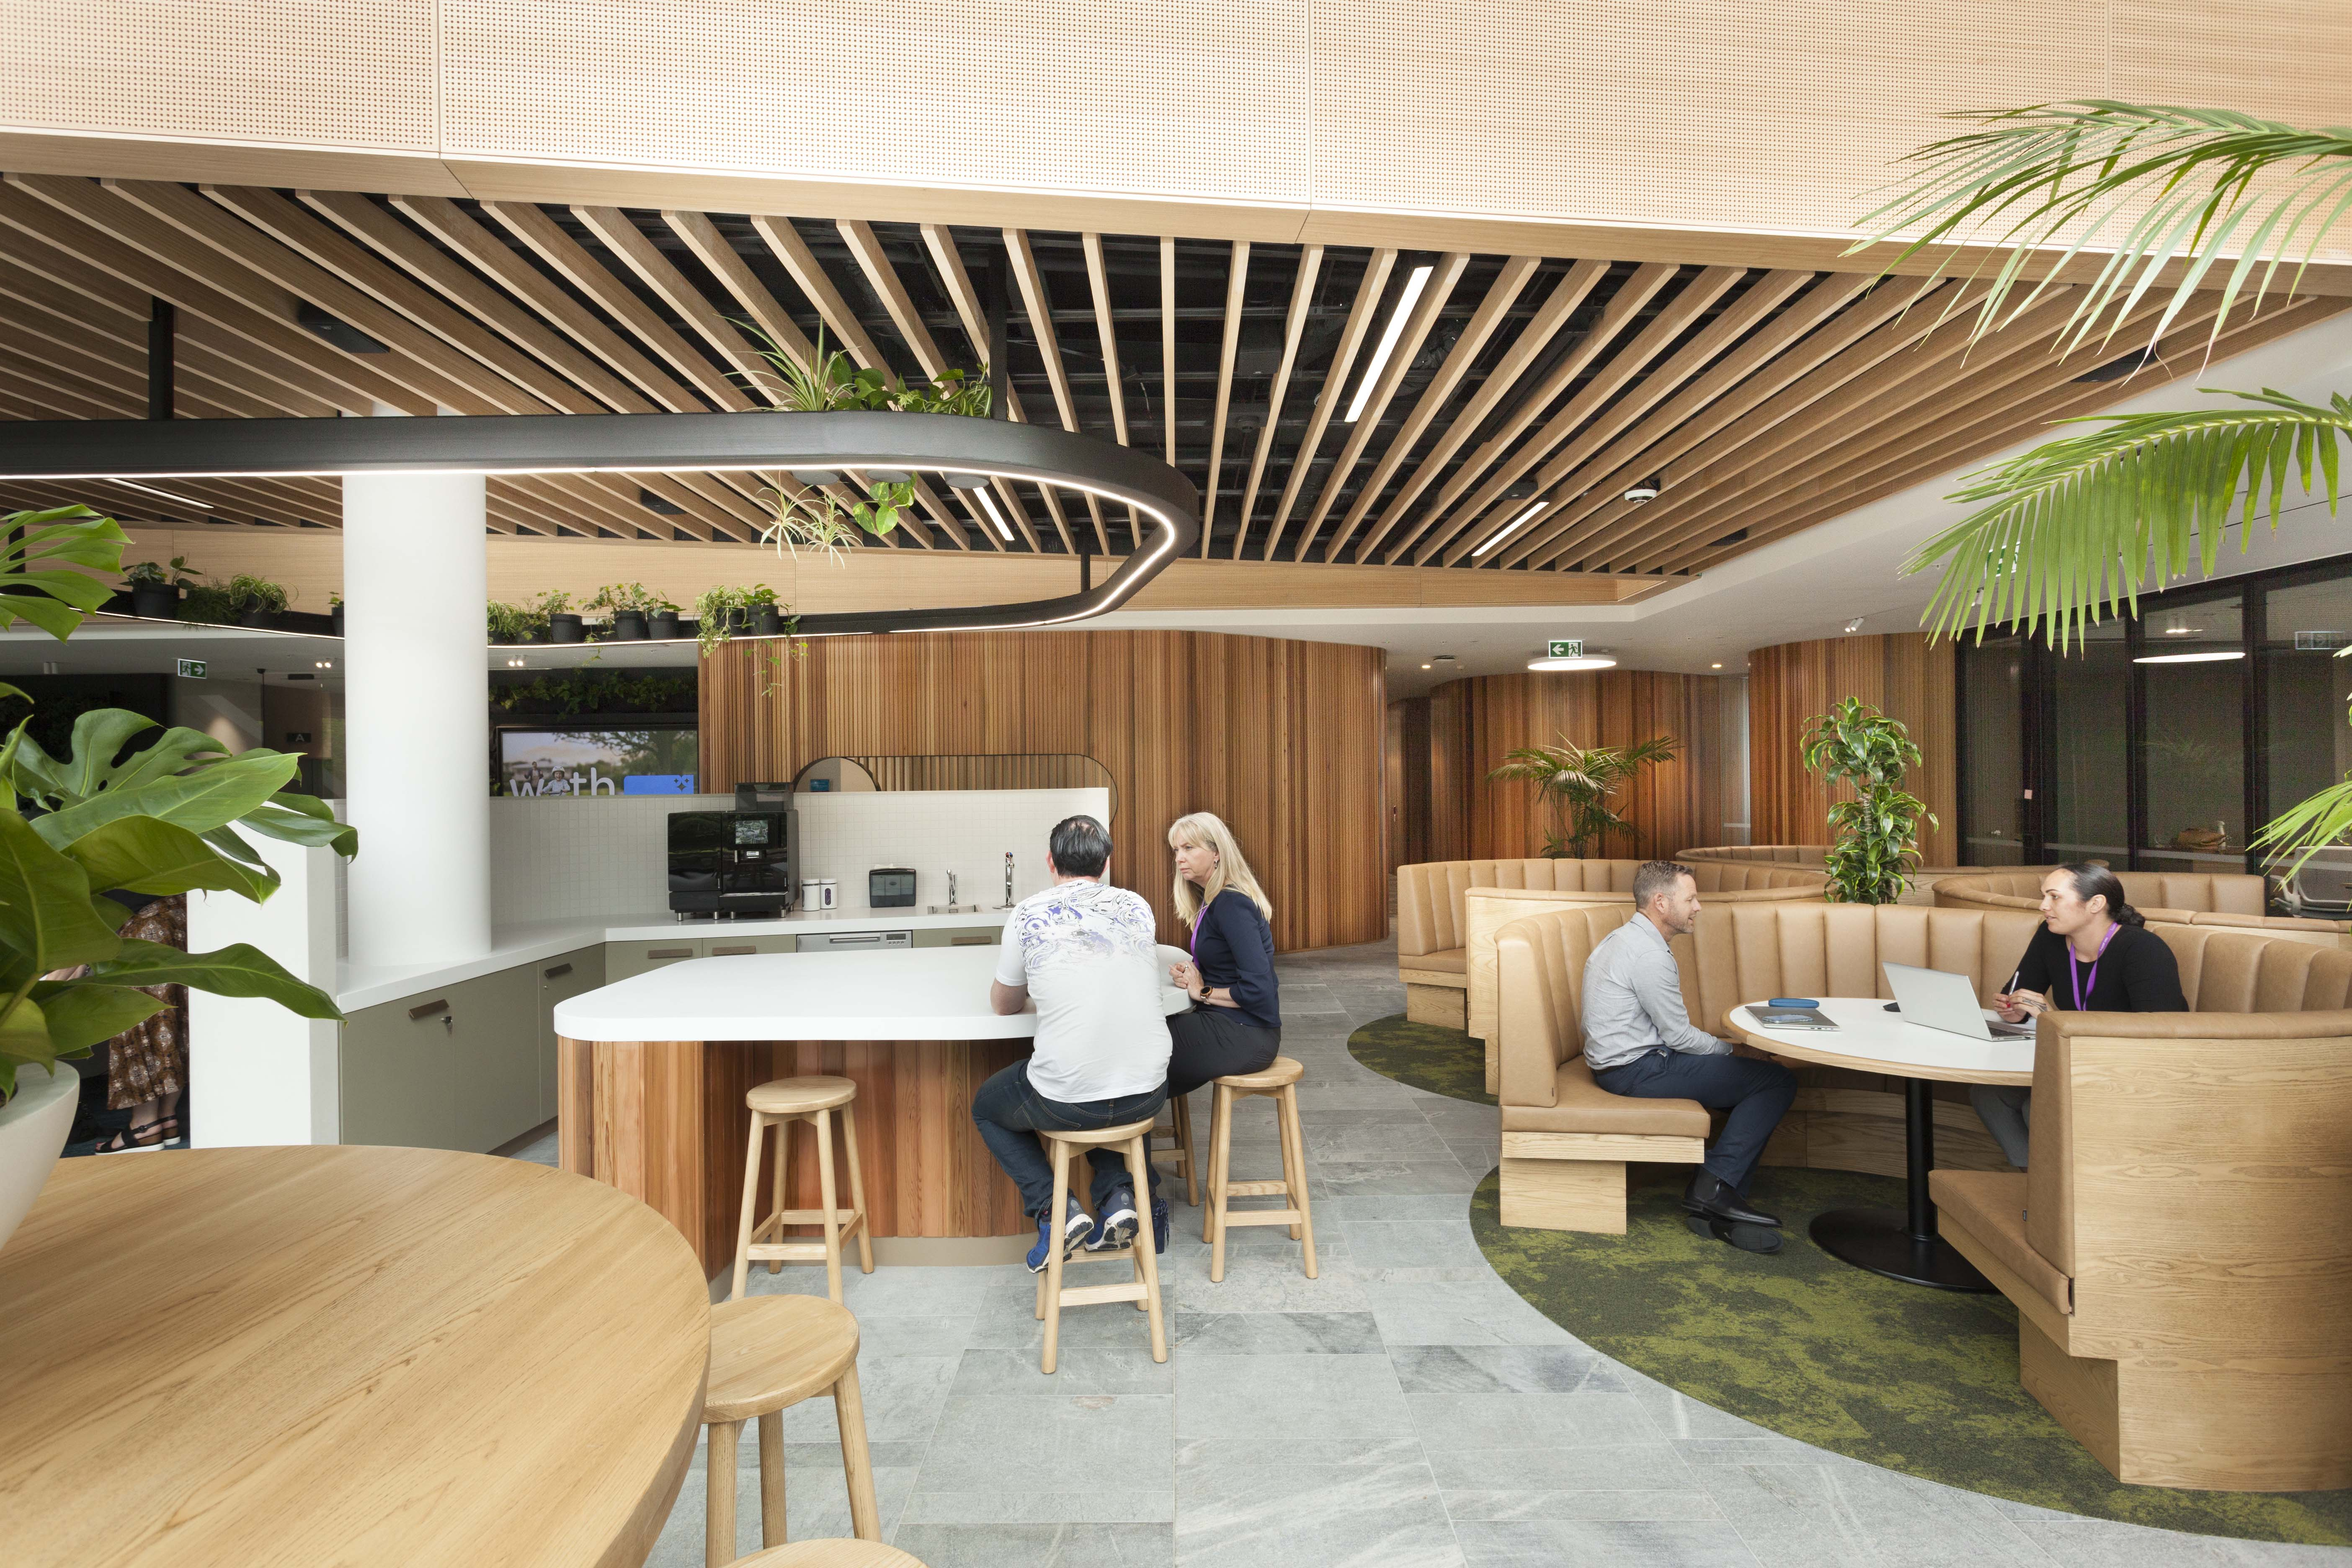 Round banquettes and communal leaners create interactive zones